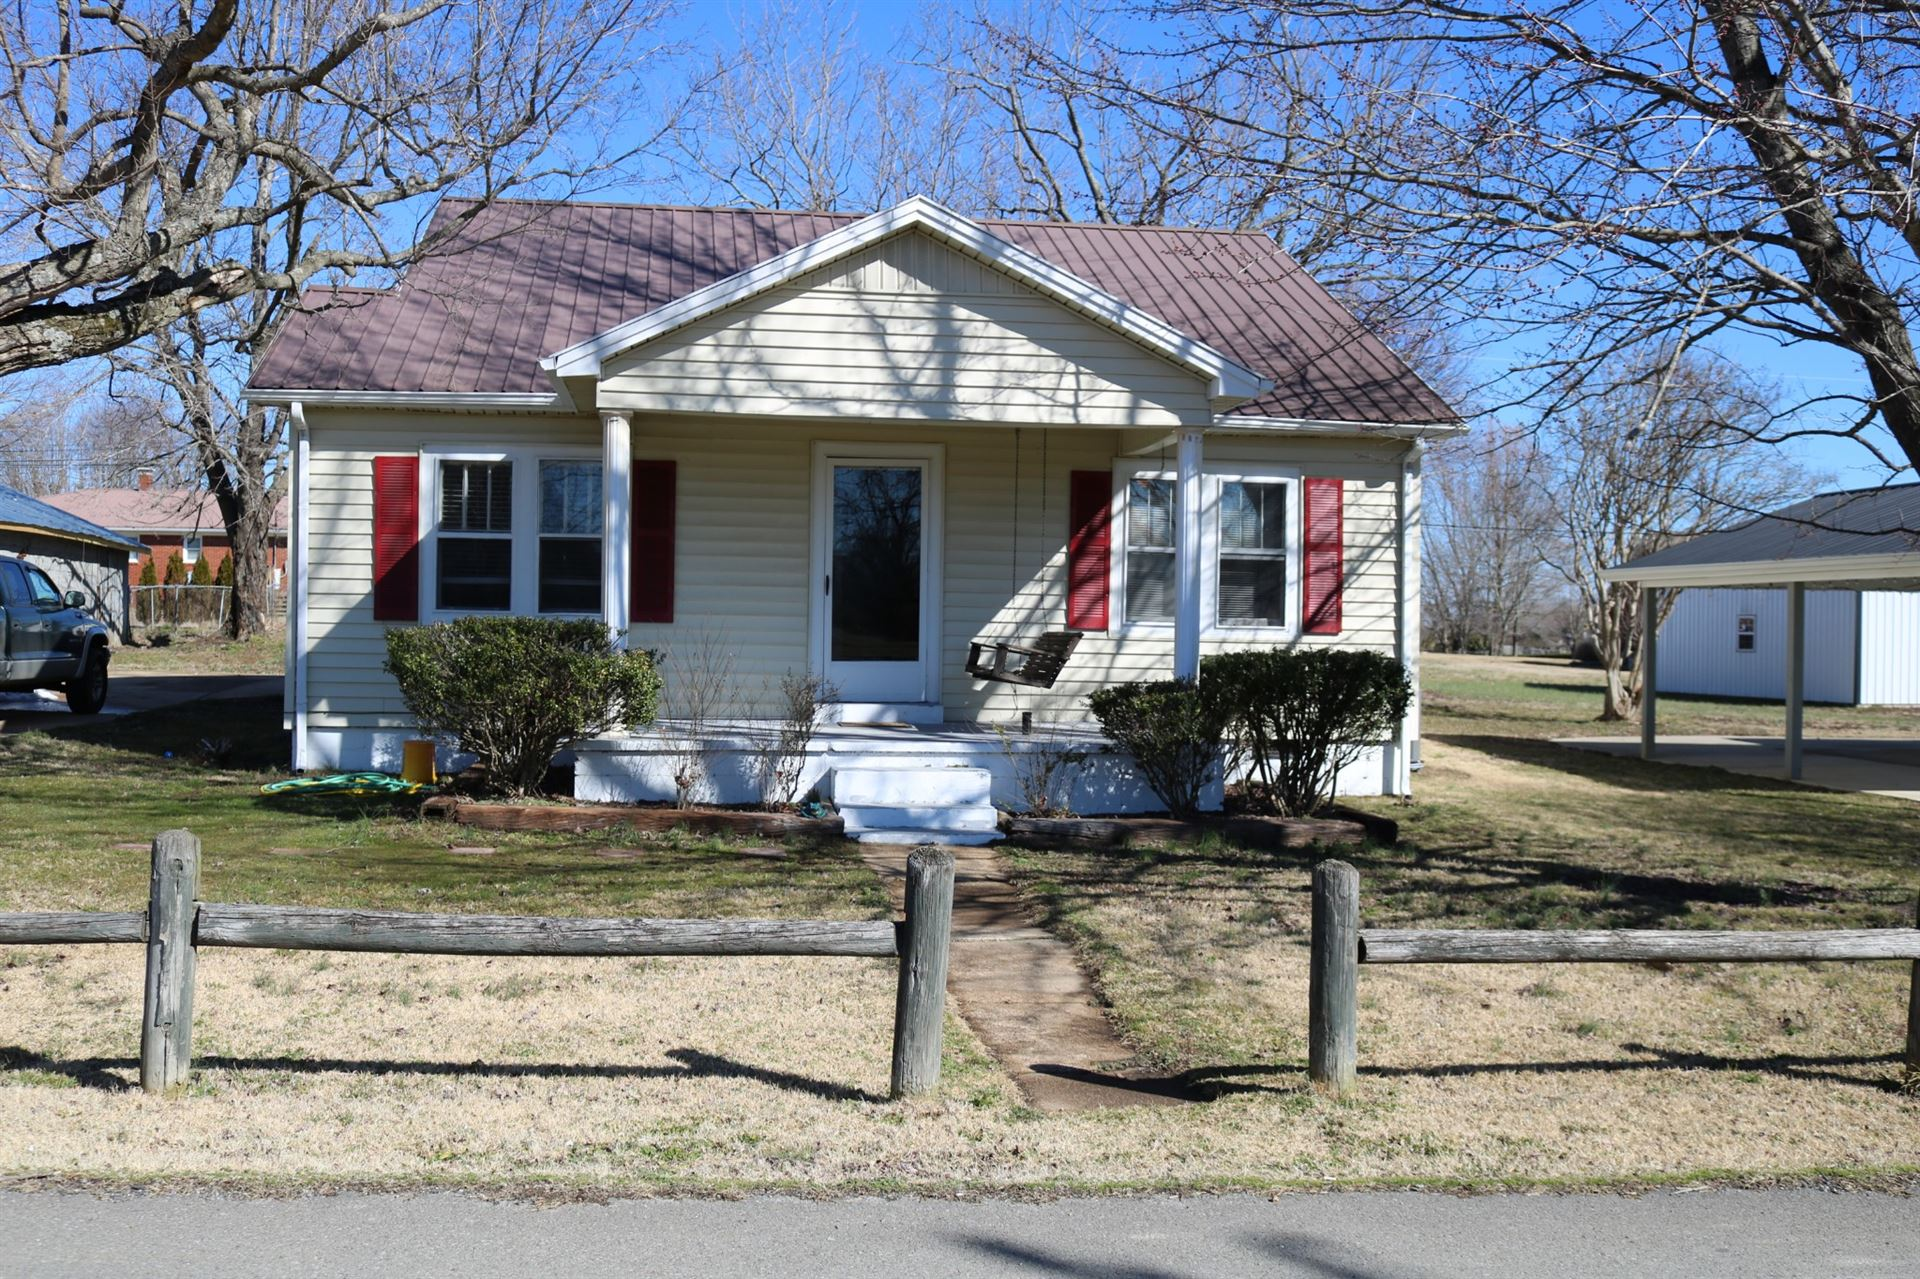 56 College Ct, McEwen, TN 37101 - MLS#: 2230363